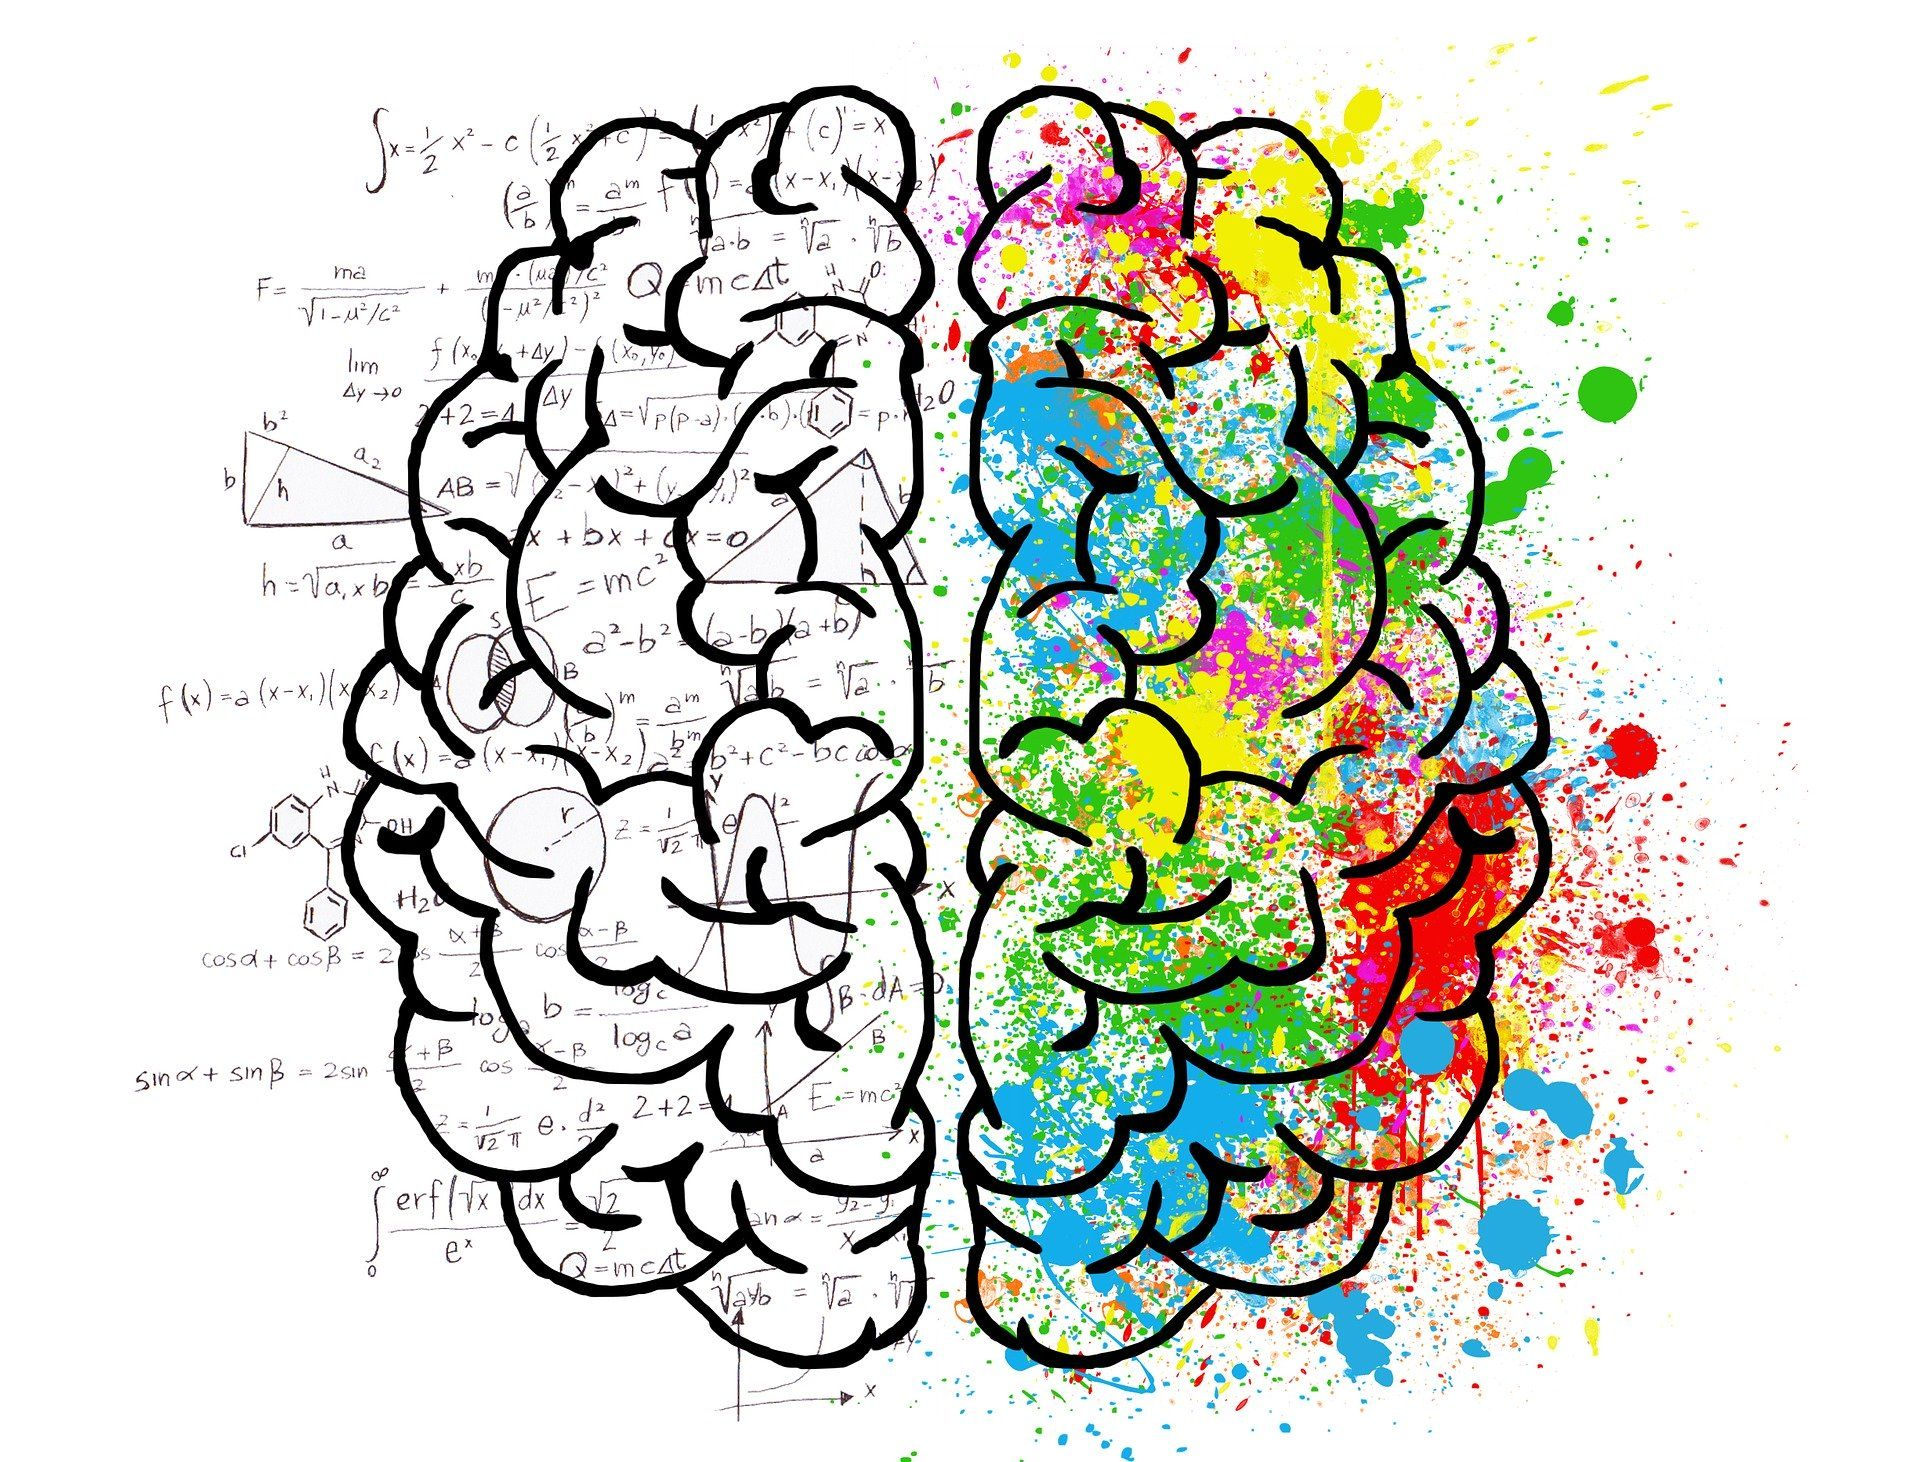 neuromarketing en el cerebro